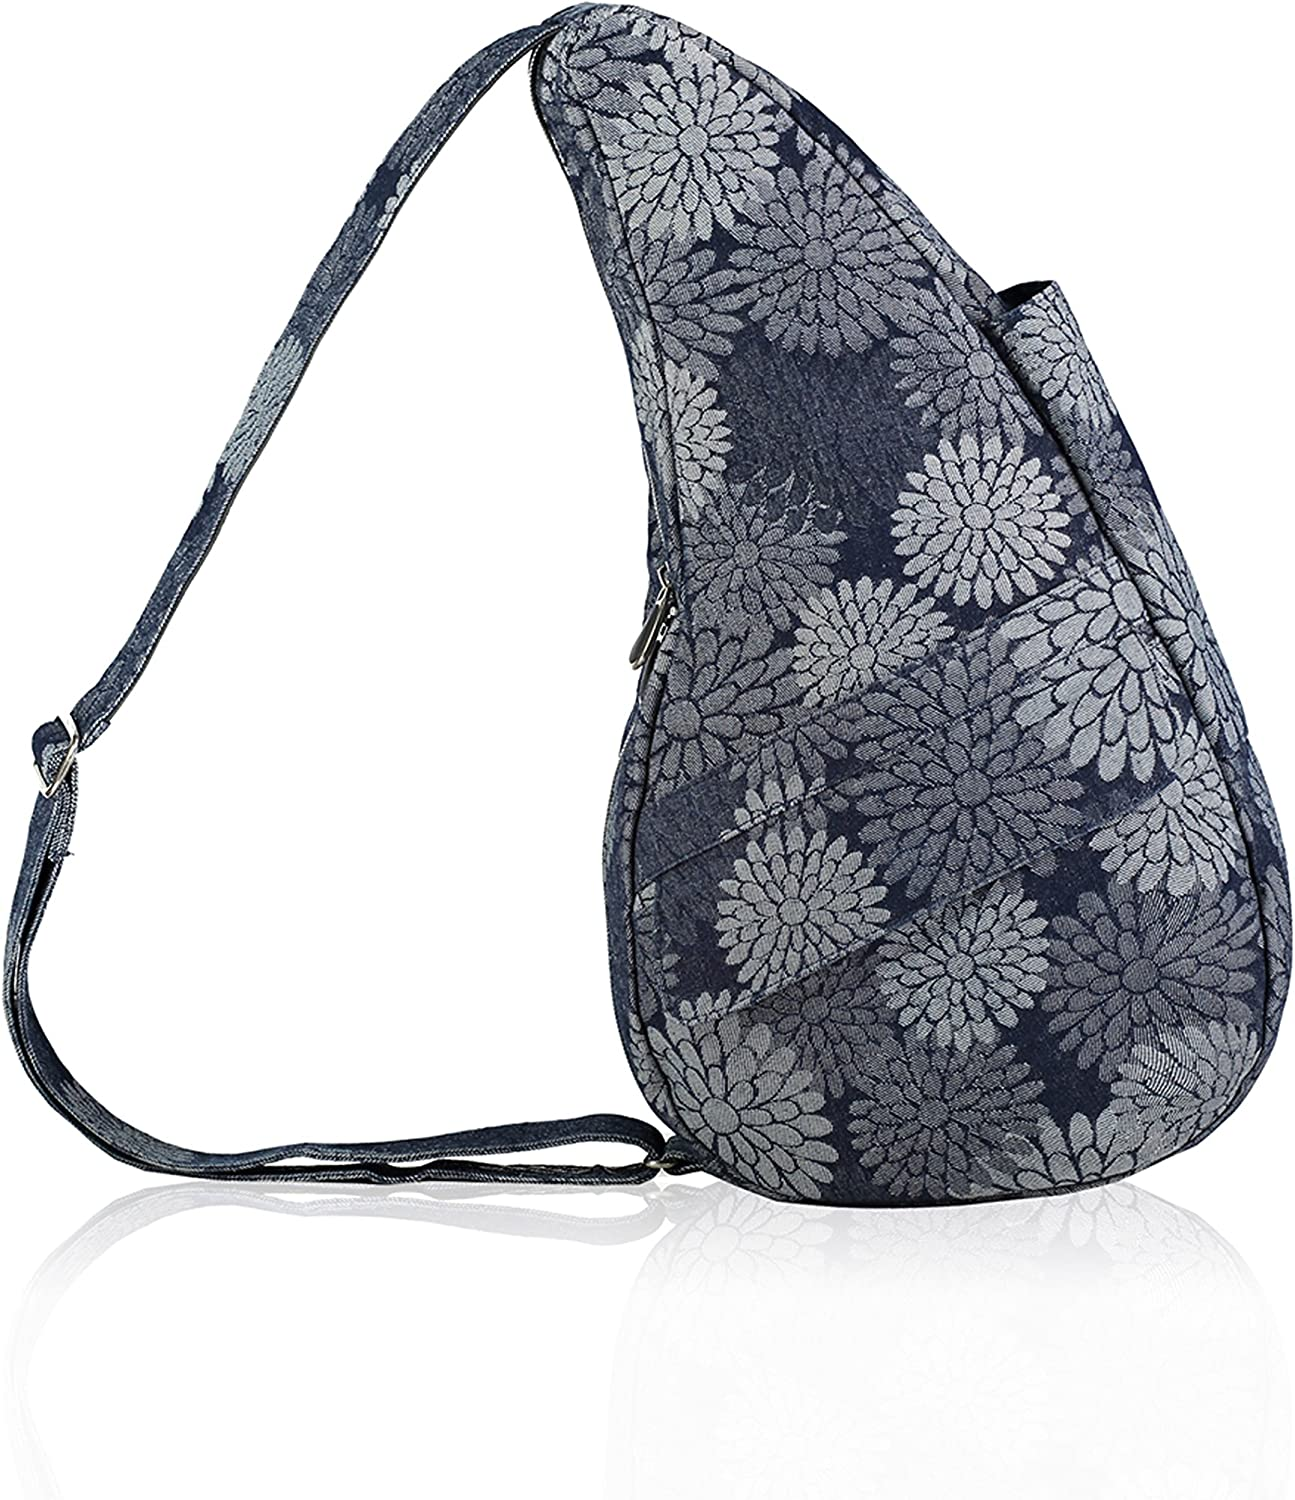 AmeriBag Healthy Back Bag tote Print Small Flower Power Grey